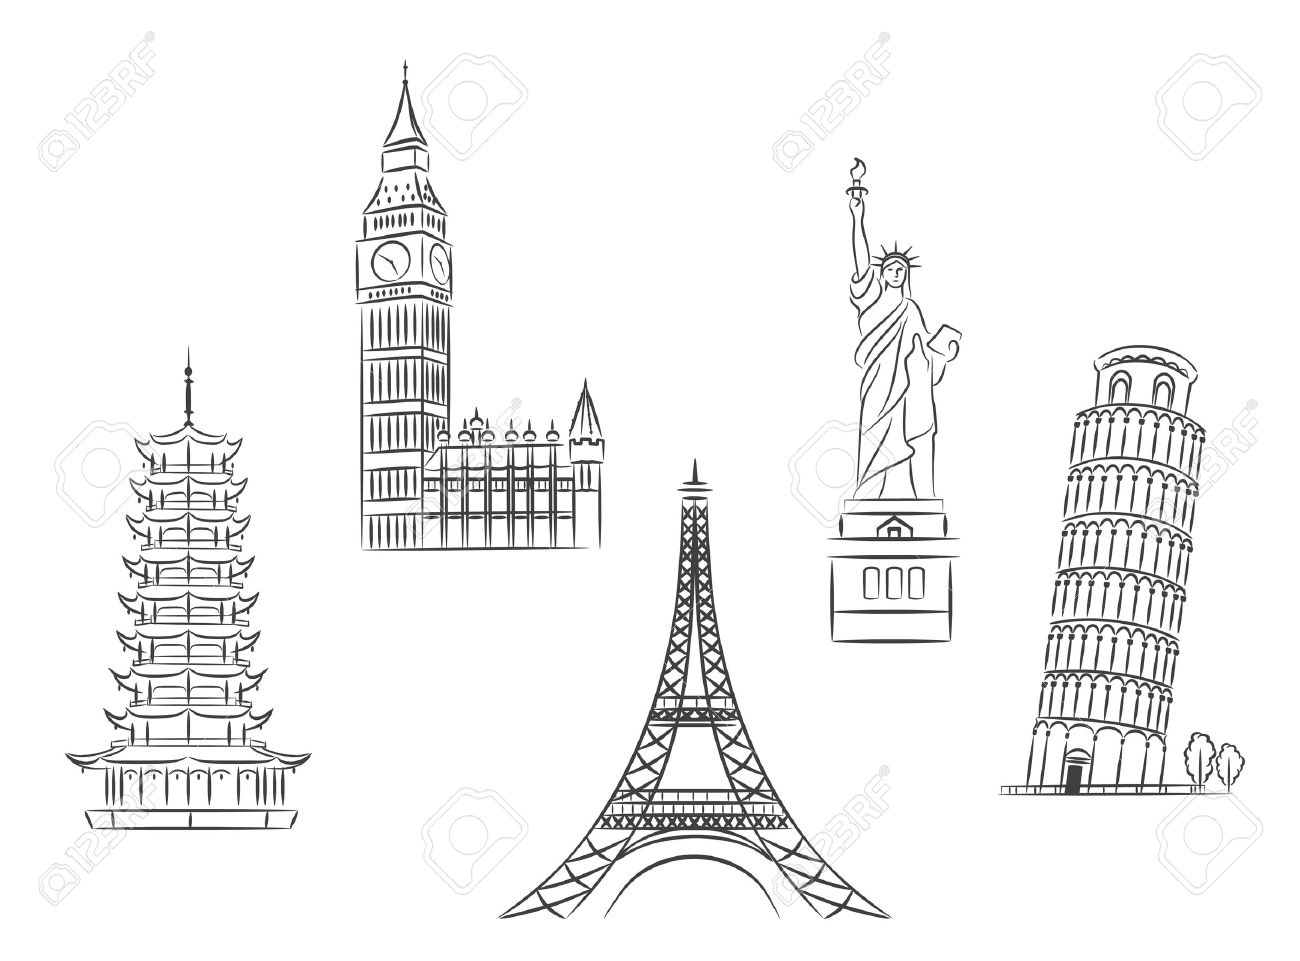 Travel landmarks set in sketch style for trip and journey concept design Stock Vector - 22598974